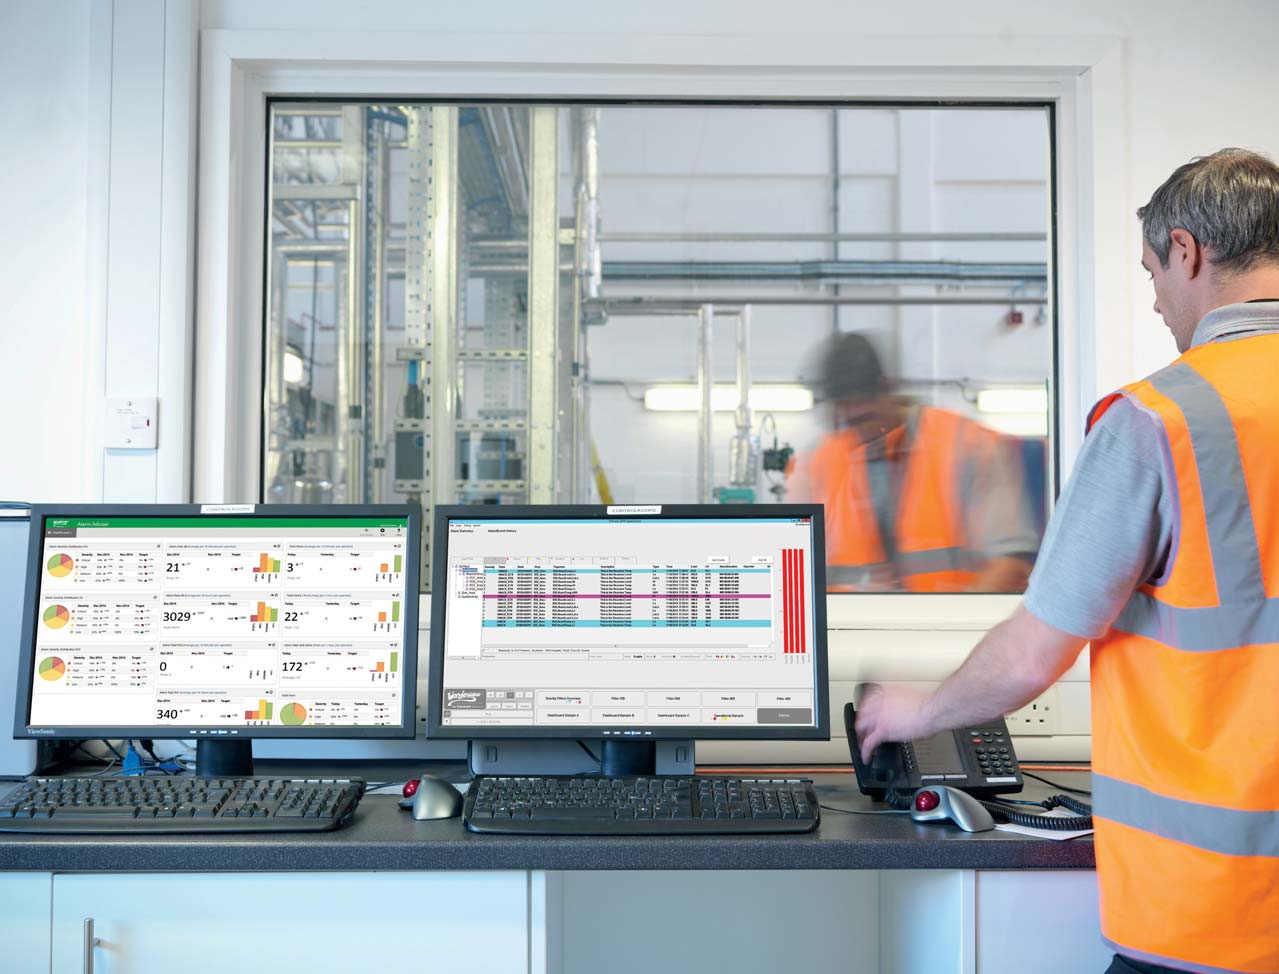 6 Proactive System Monitoring Utility and Services Using state-of-the-art system monitoring technology and standards, Schneider Electric has developed a solution that works in conjunction with